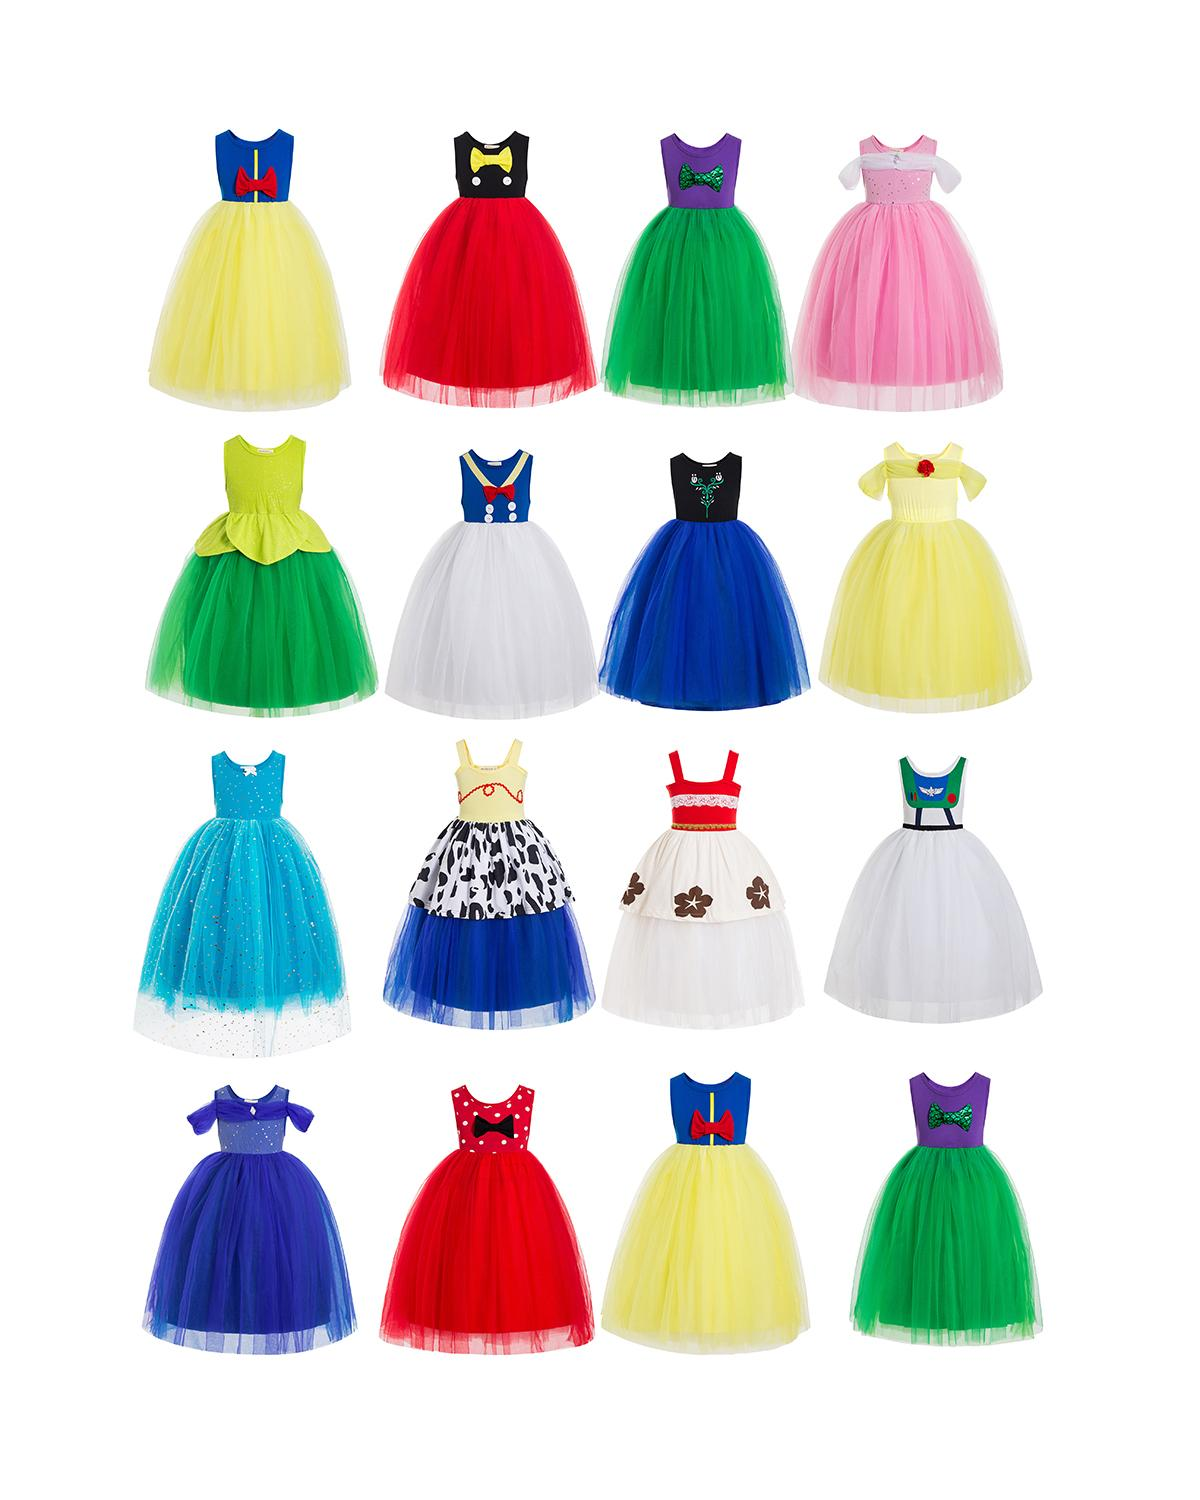 bell Ruffle Top Birthday Outfit Outfit Birthday Outfit Outfit  birthday tutu dress Flower Girls' Dresses kids clothes girls dres 5